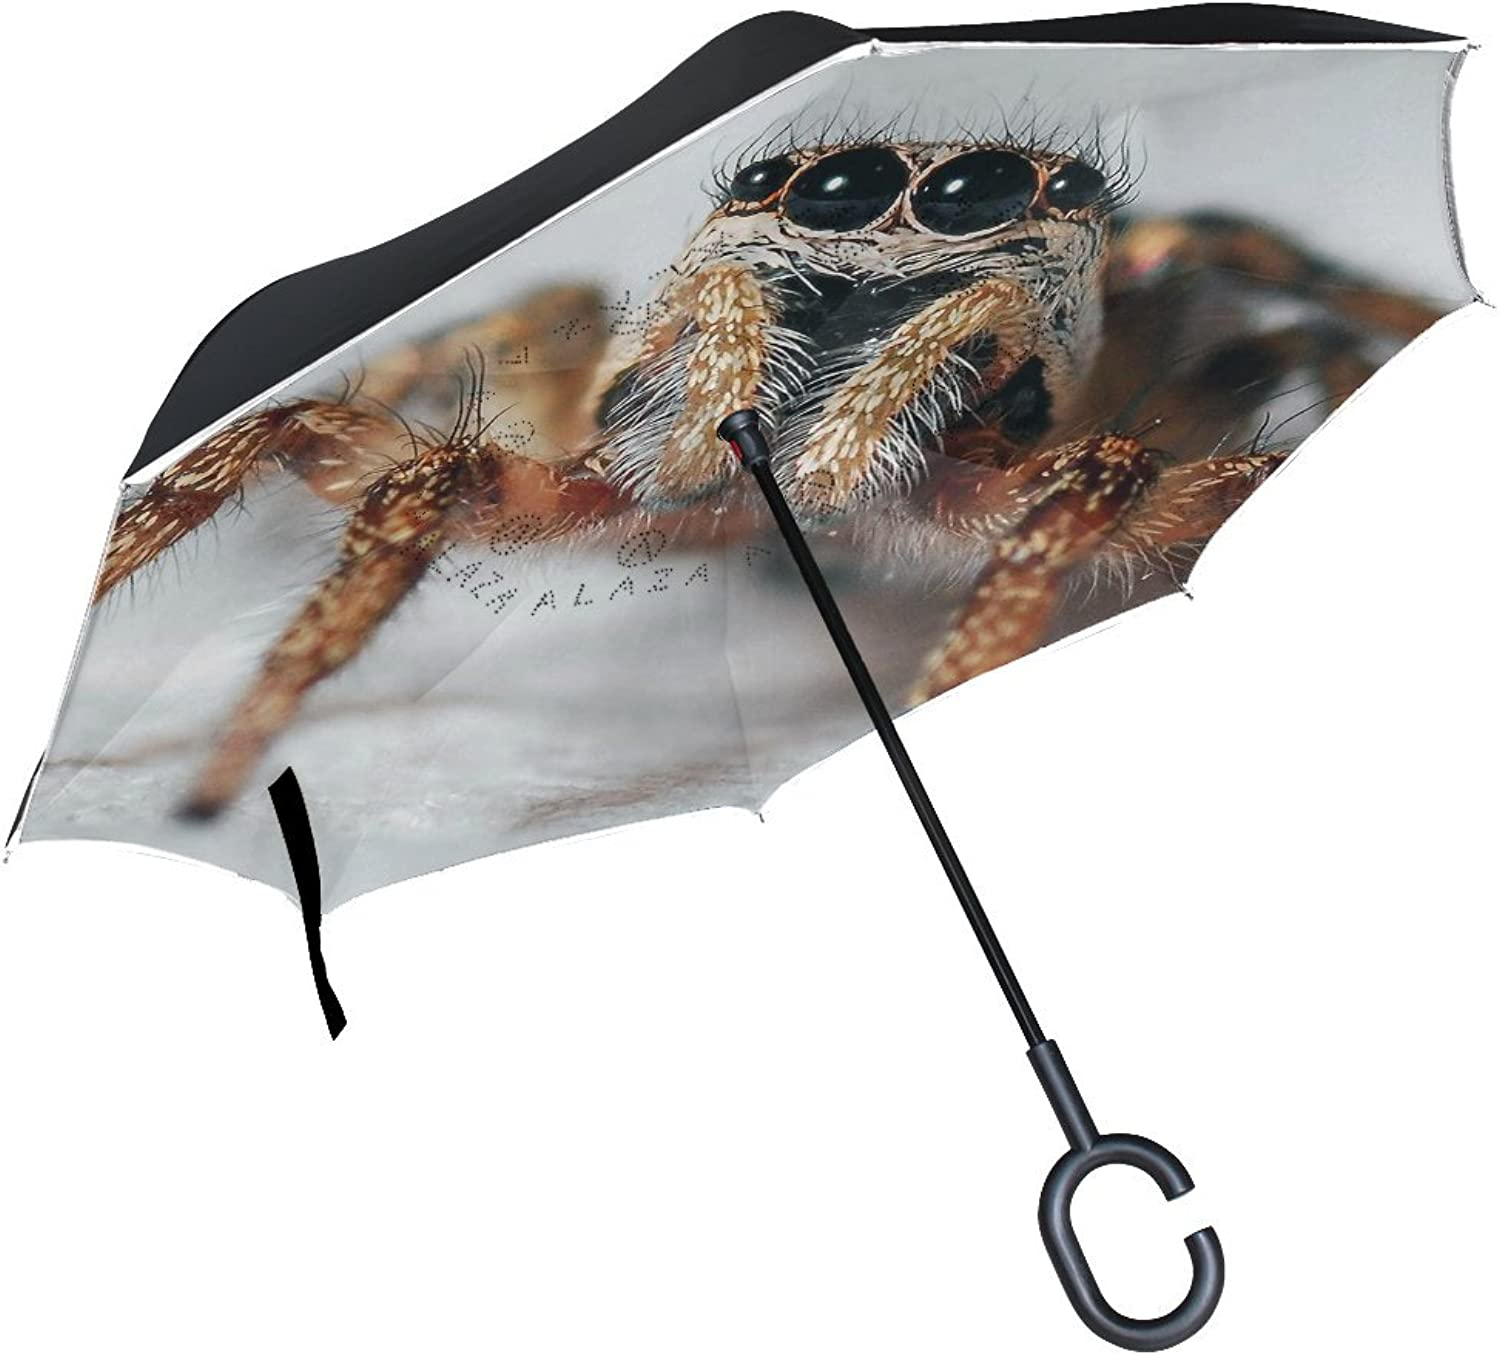 Animal Monkey Spider Fluffy Black Yellow Pet Danger Scary Ingreened Umbrella Large Double Layer Outdoor Rain Sun Car Reversible Umbrella